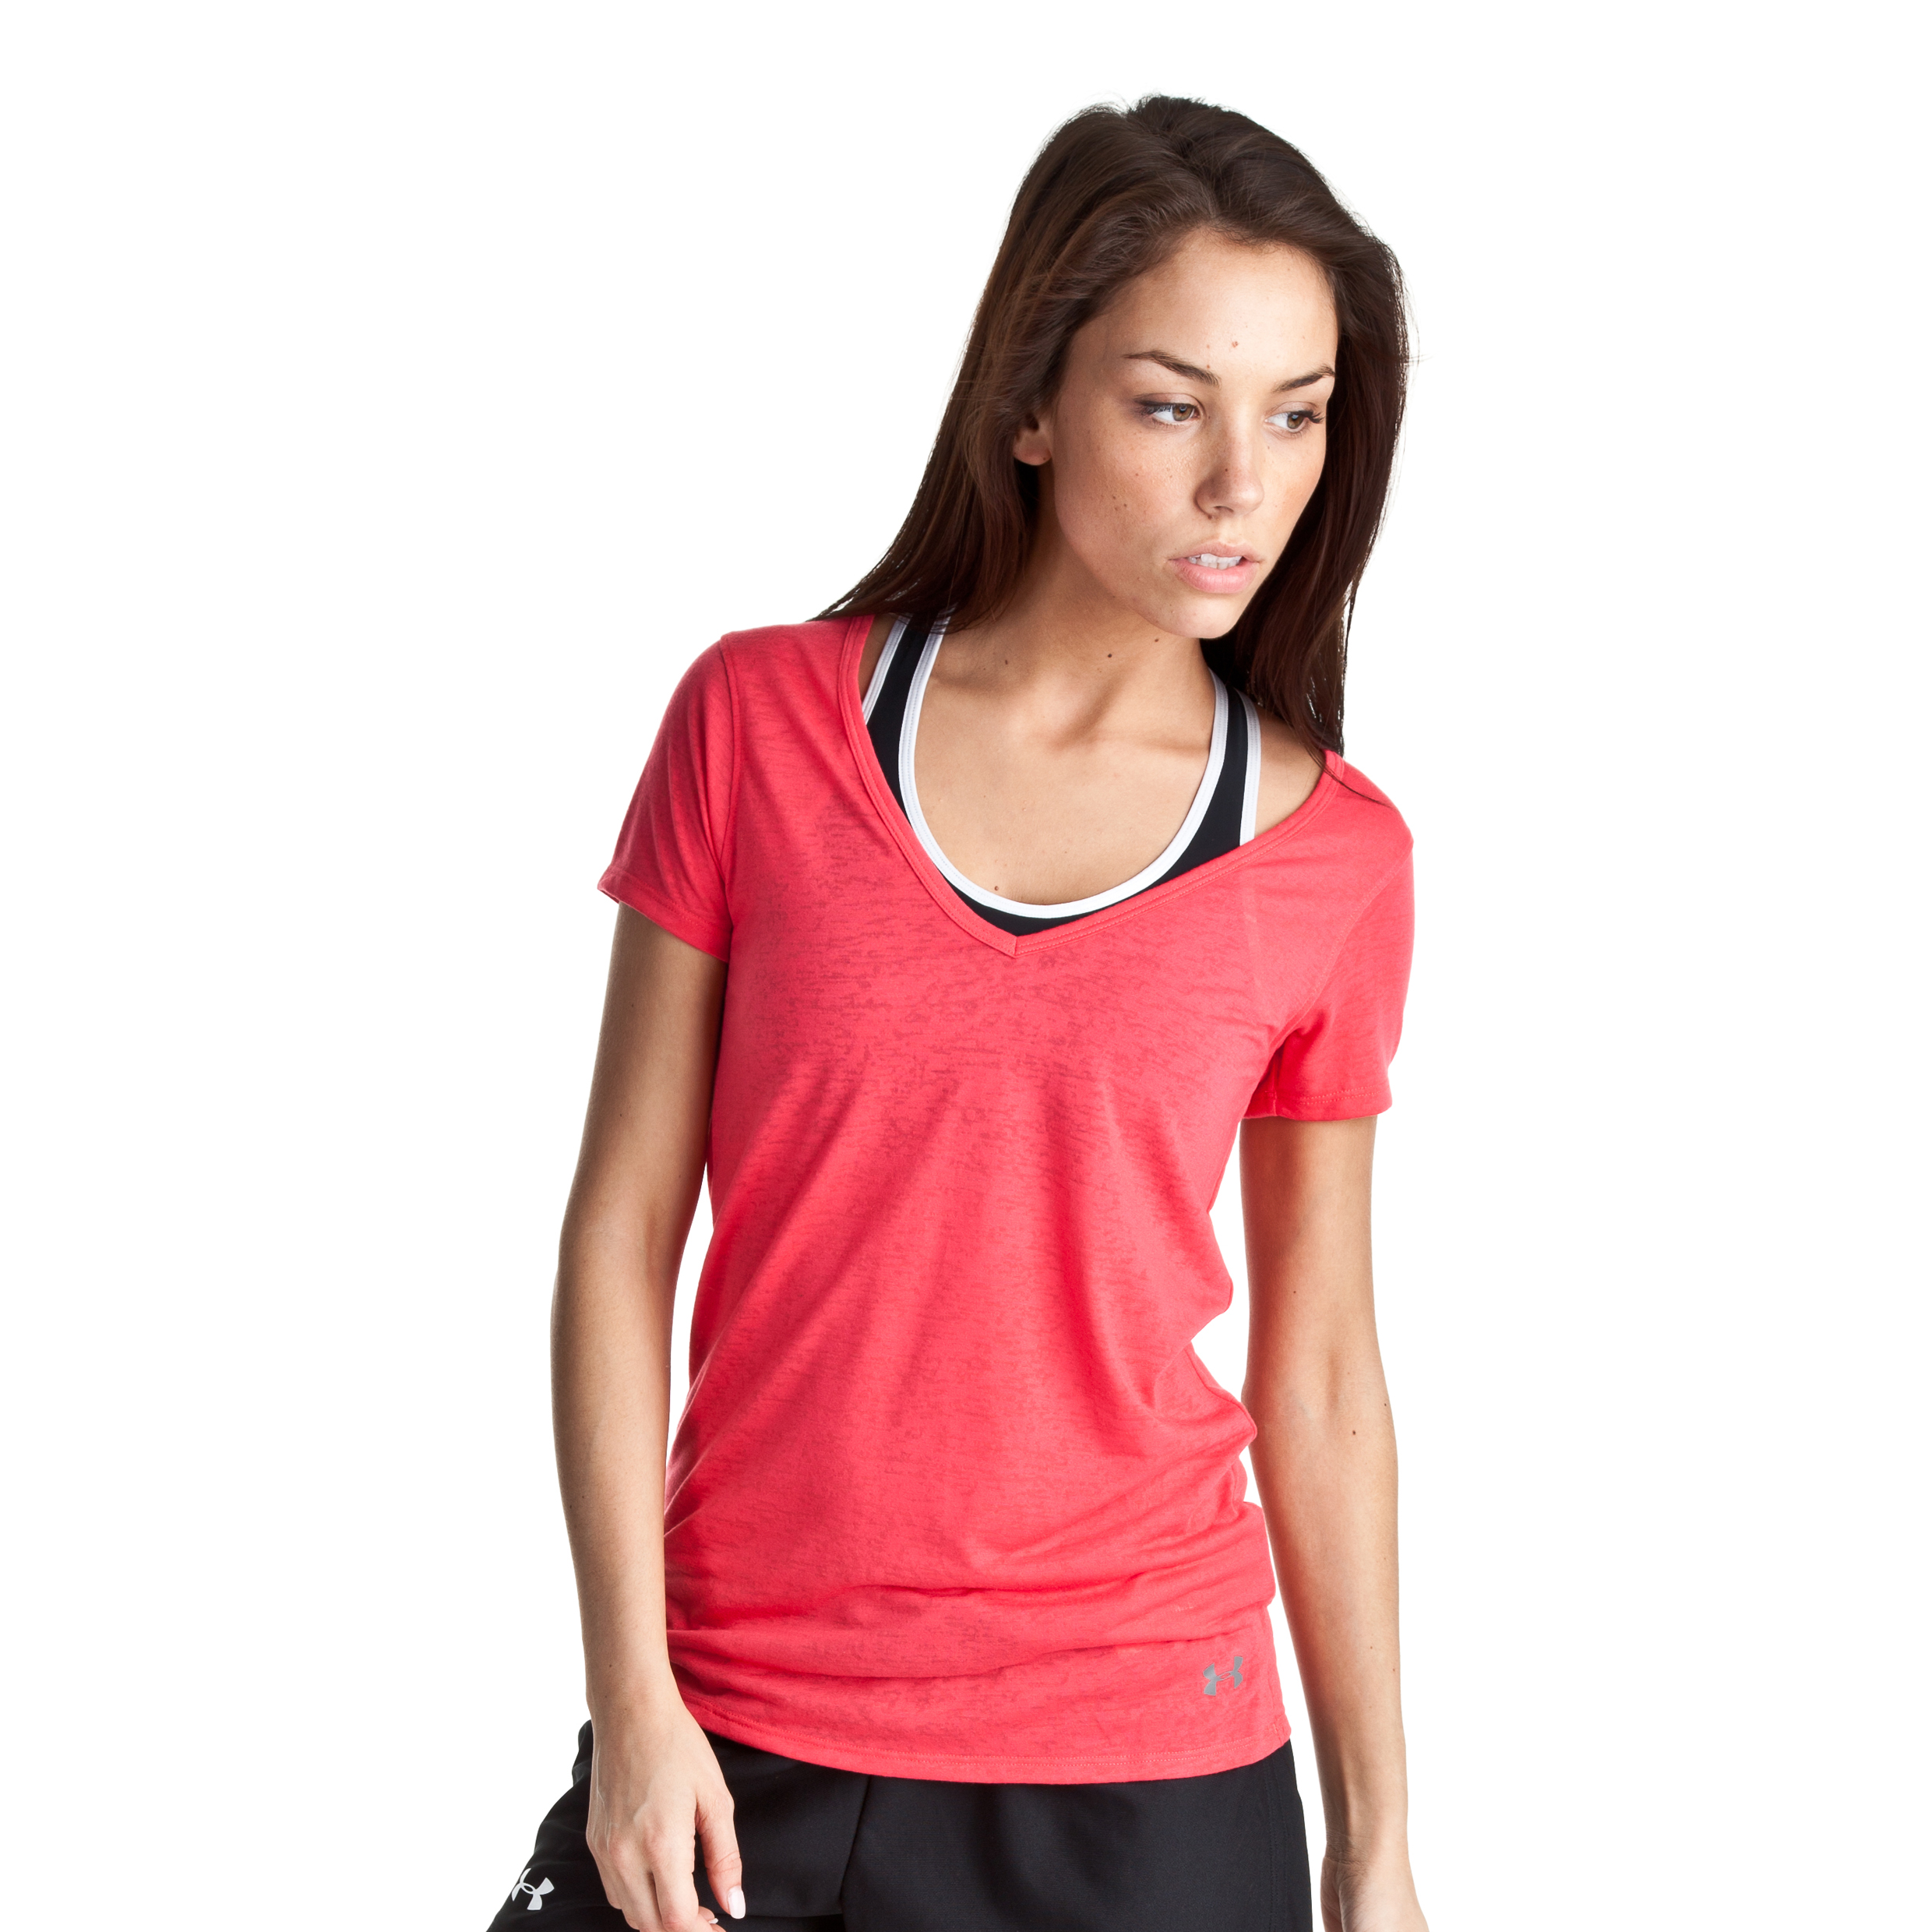 Under Armour Achieve Burnout T - Hibiscous/Graphite - Womens